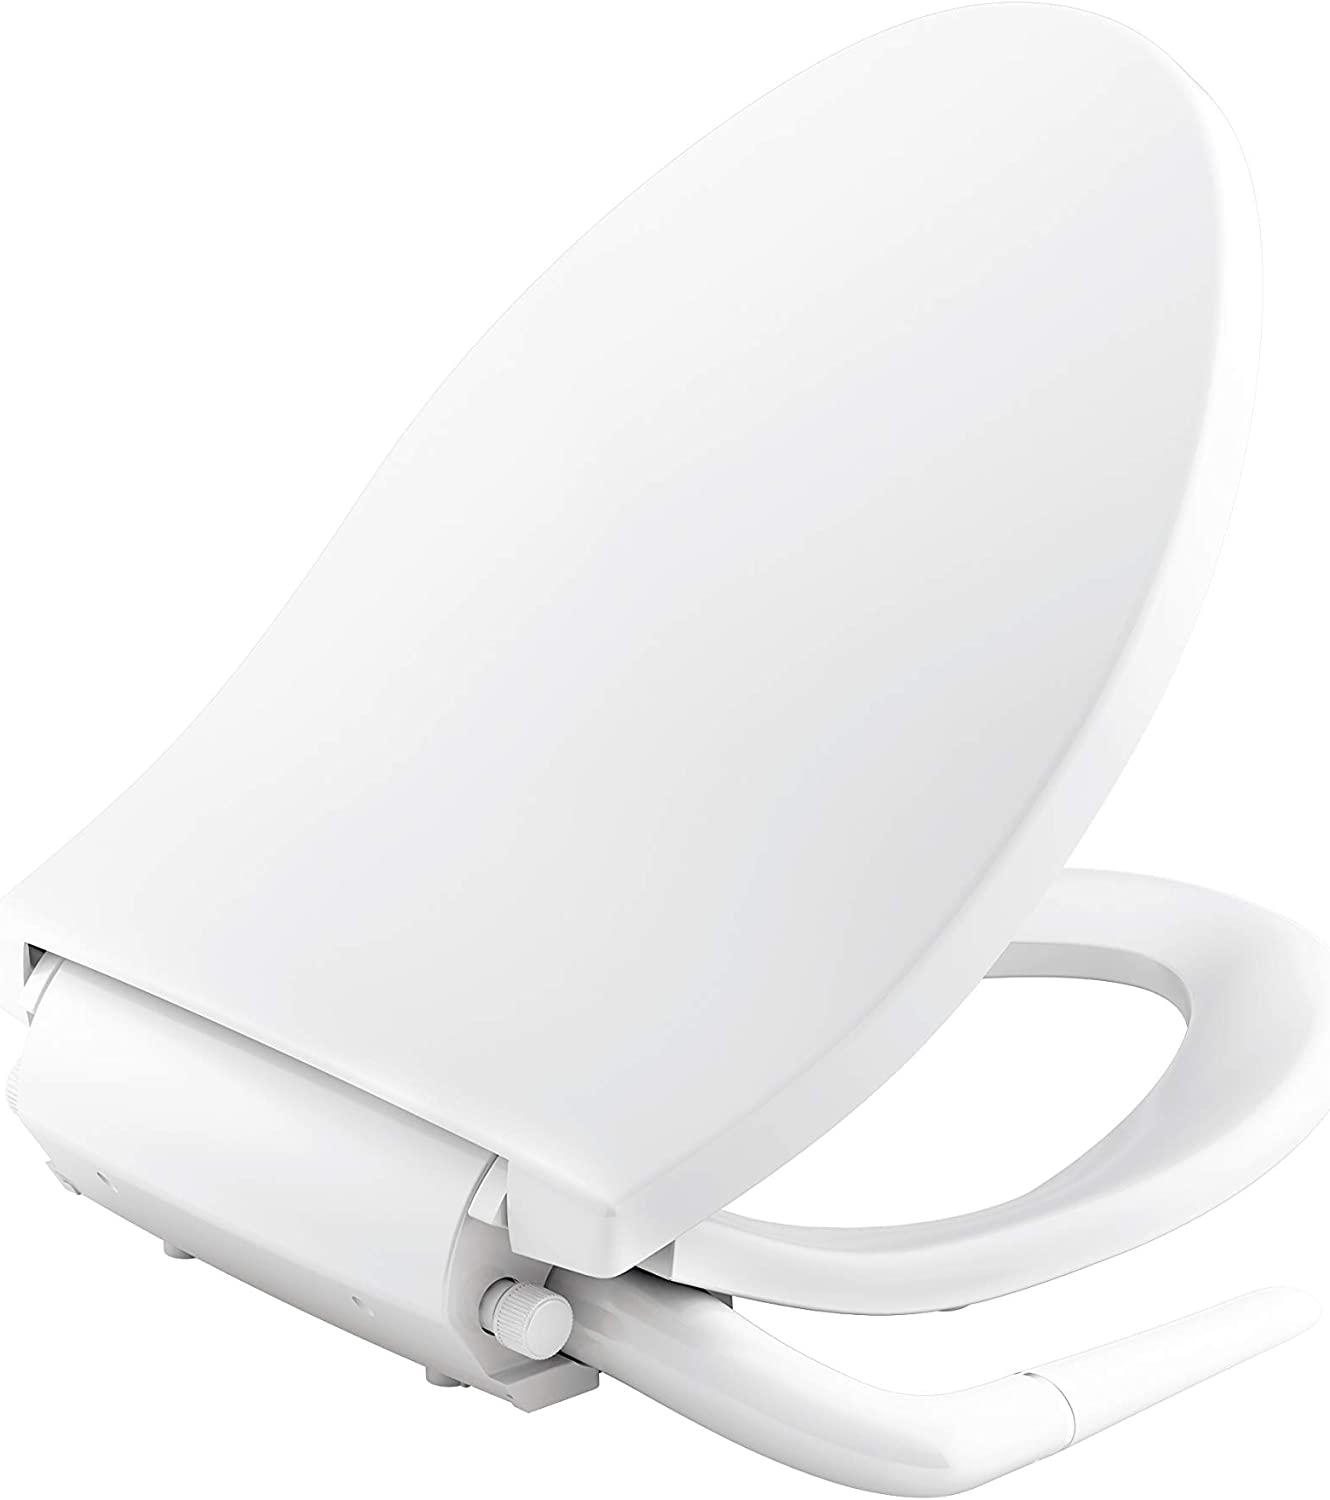 Kohler K 5724 0 Puretide Elongated Manual Bidet Toilet Seat White With Quiet Close Lid And Seat Adjustable Spray Pressure And Position Self Cleaning Wand No Batteries Or Electrical Outlet Needed Amazon Com